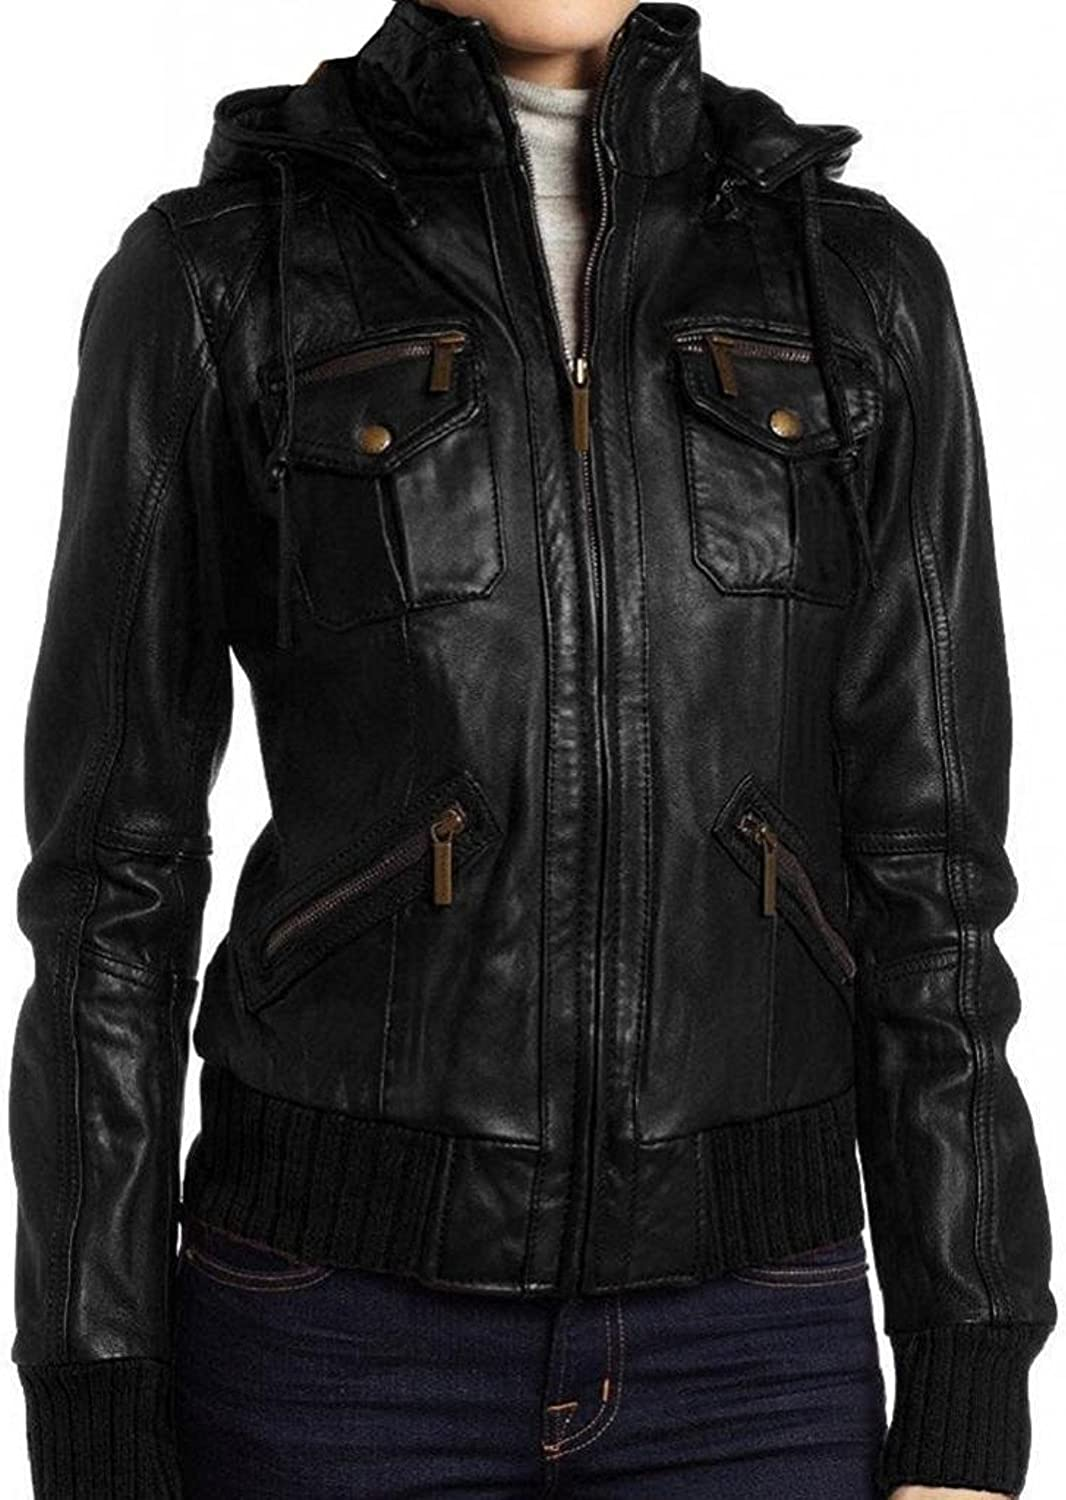 The Leather Factory Women's Lambskin Detachable Hooded Leather Bomber Jacket